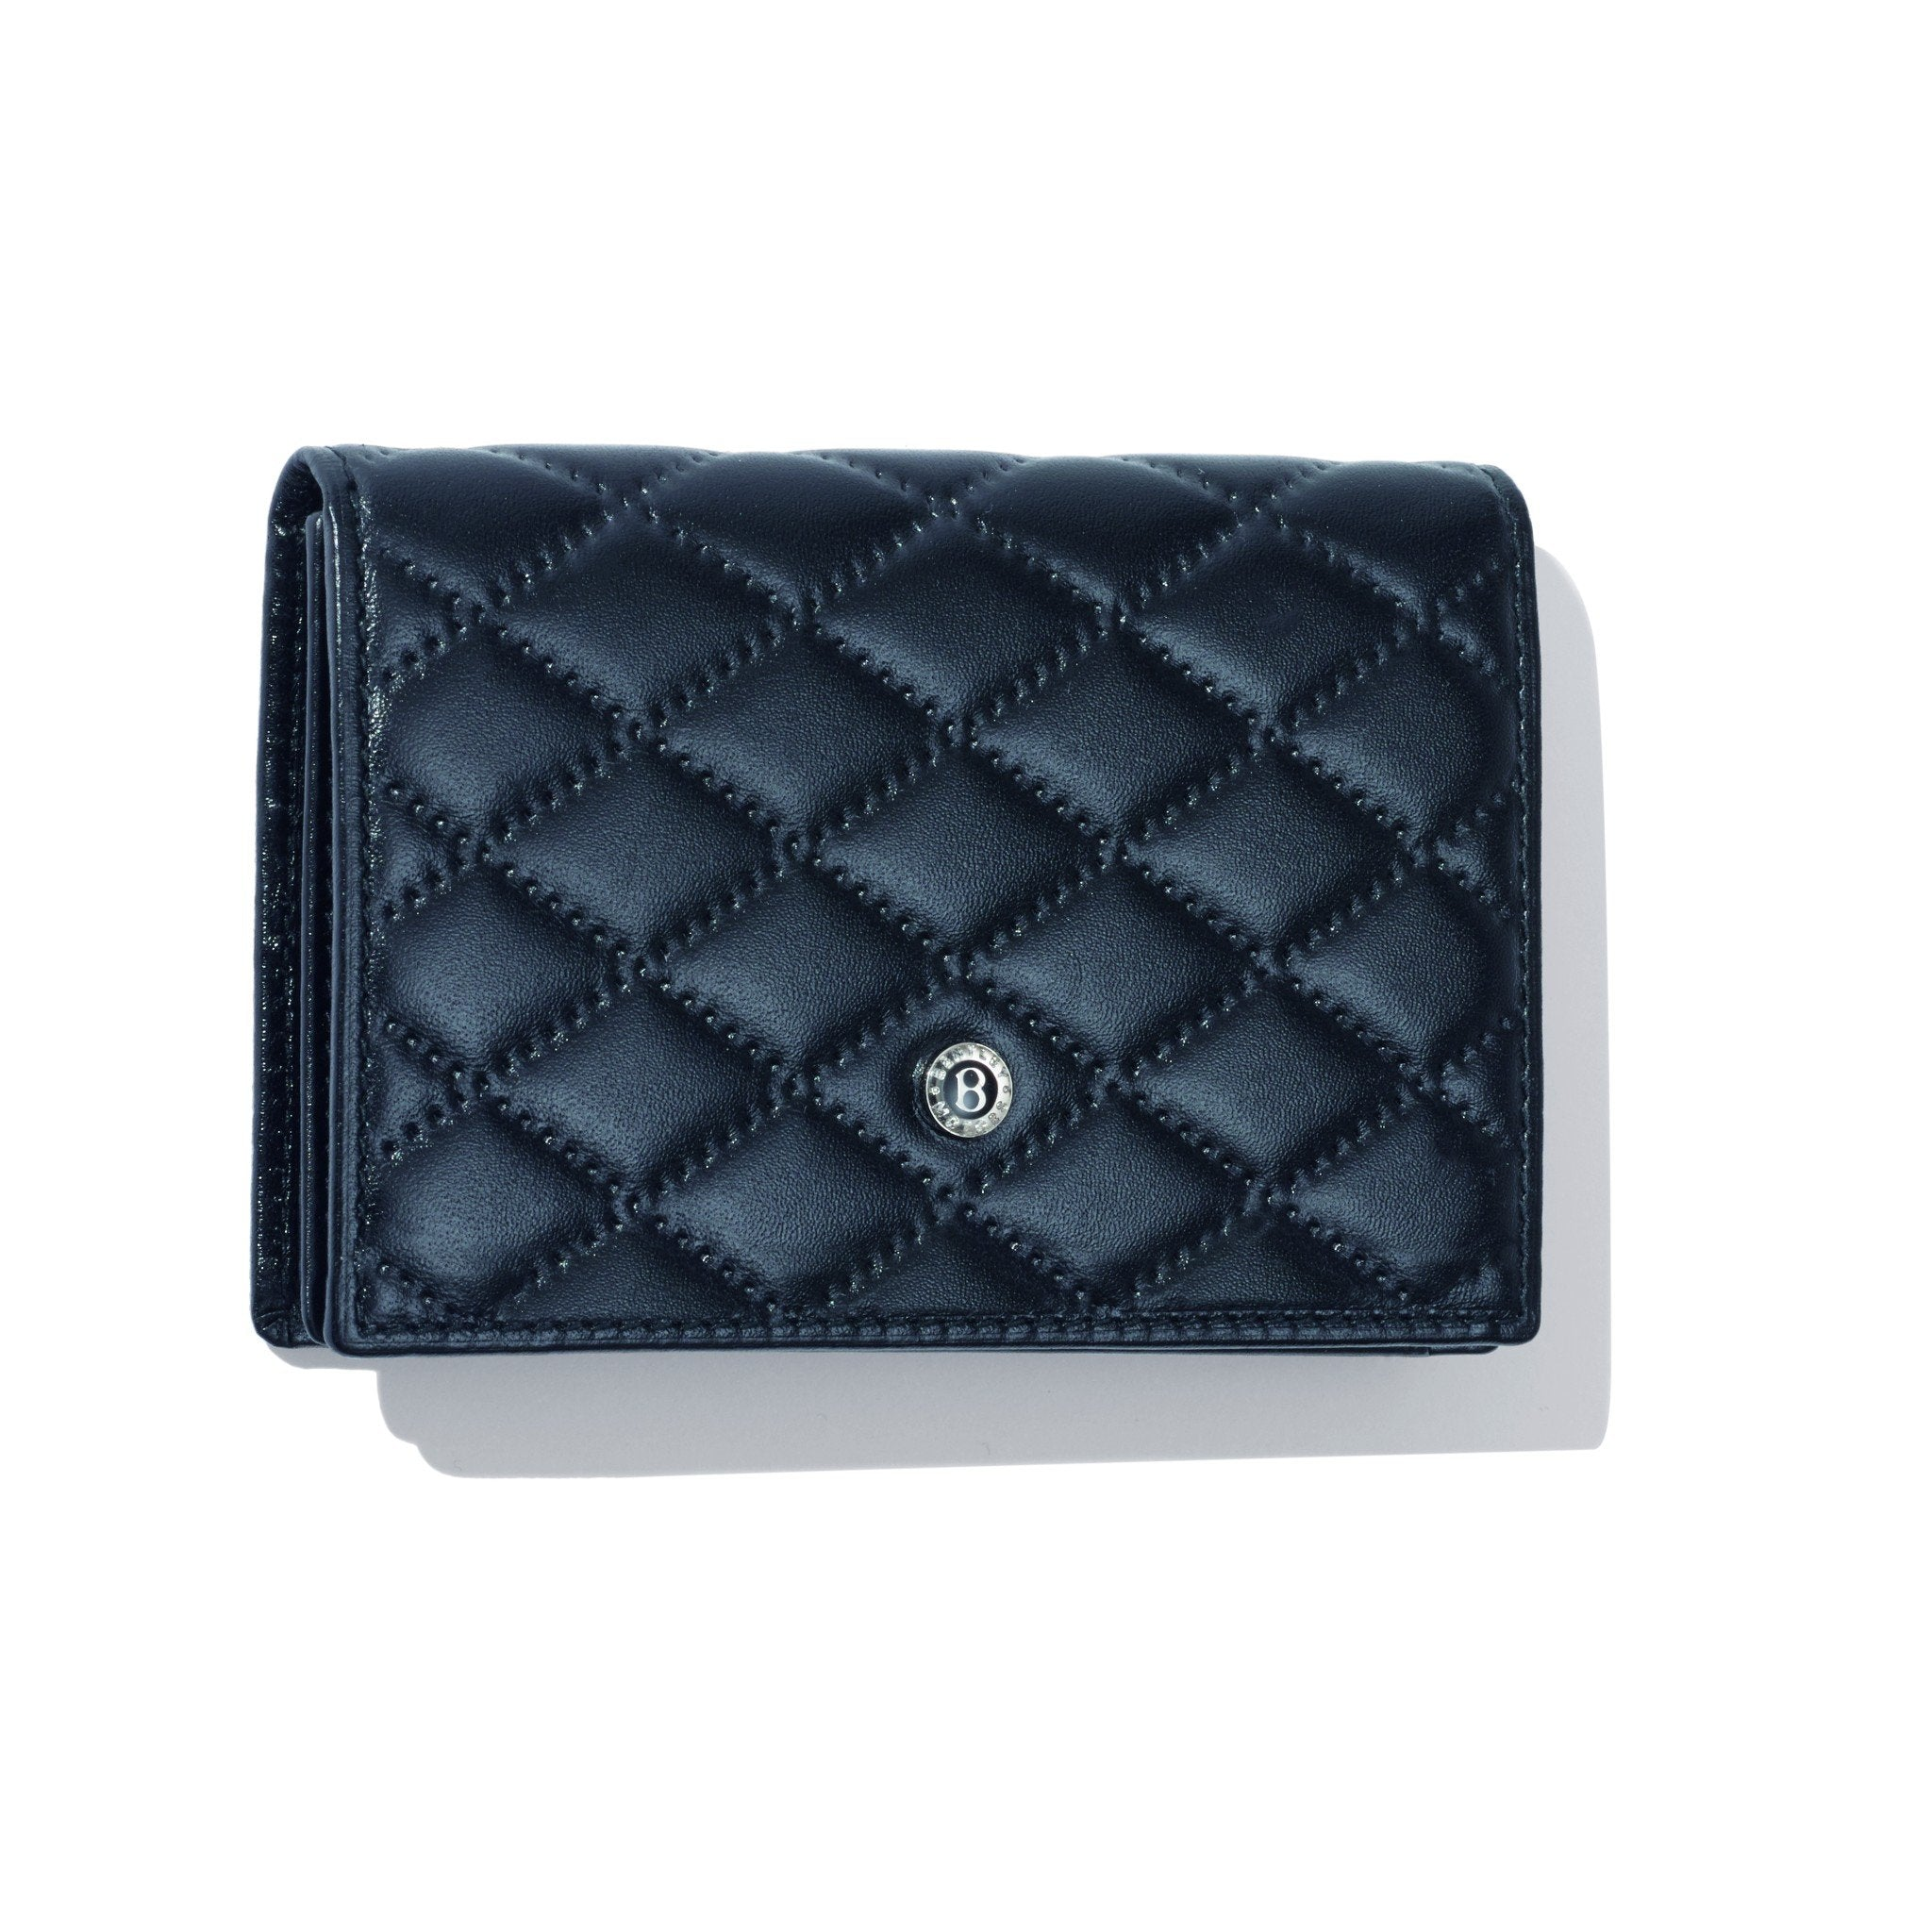 Ladies business card holder the bentley collection ladies business card holder colourmoves Image collections